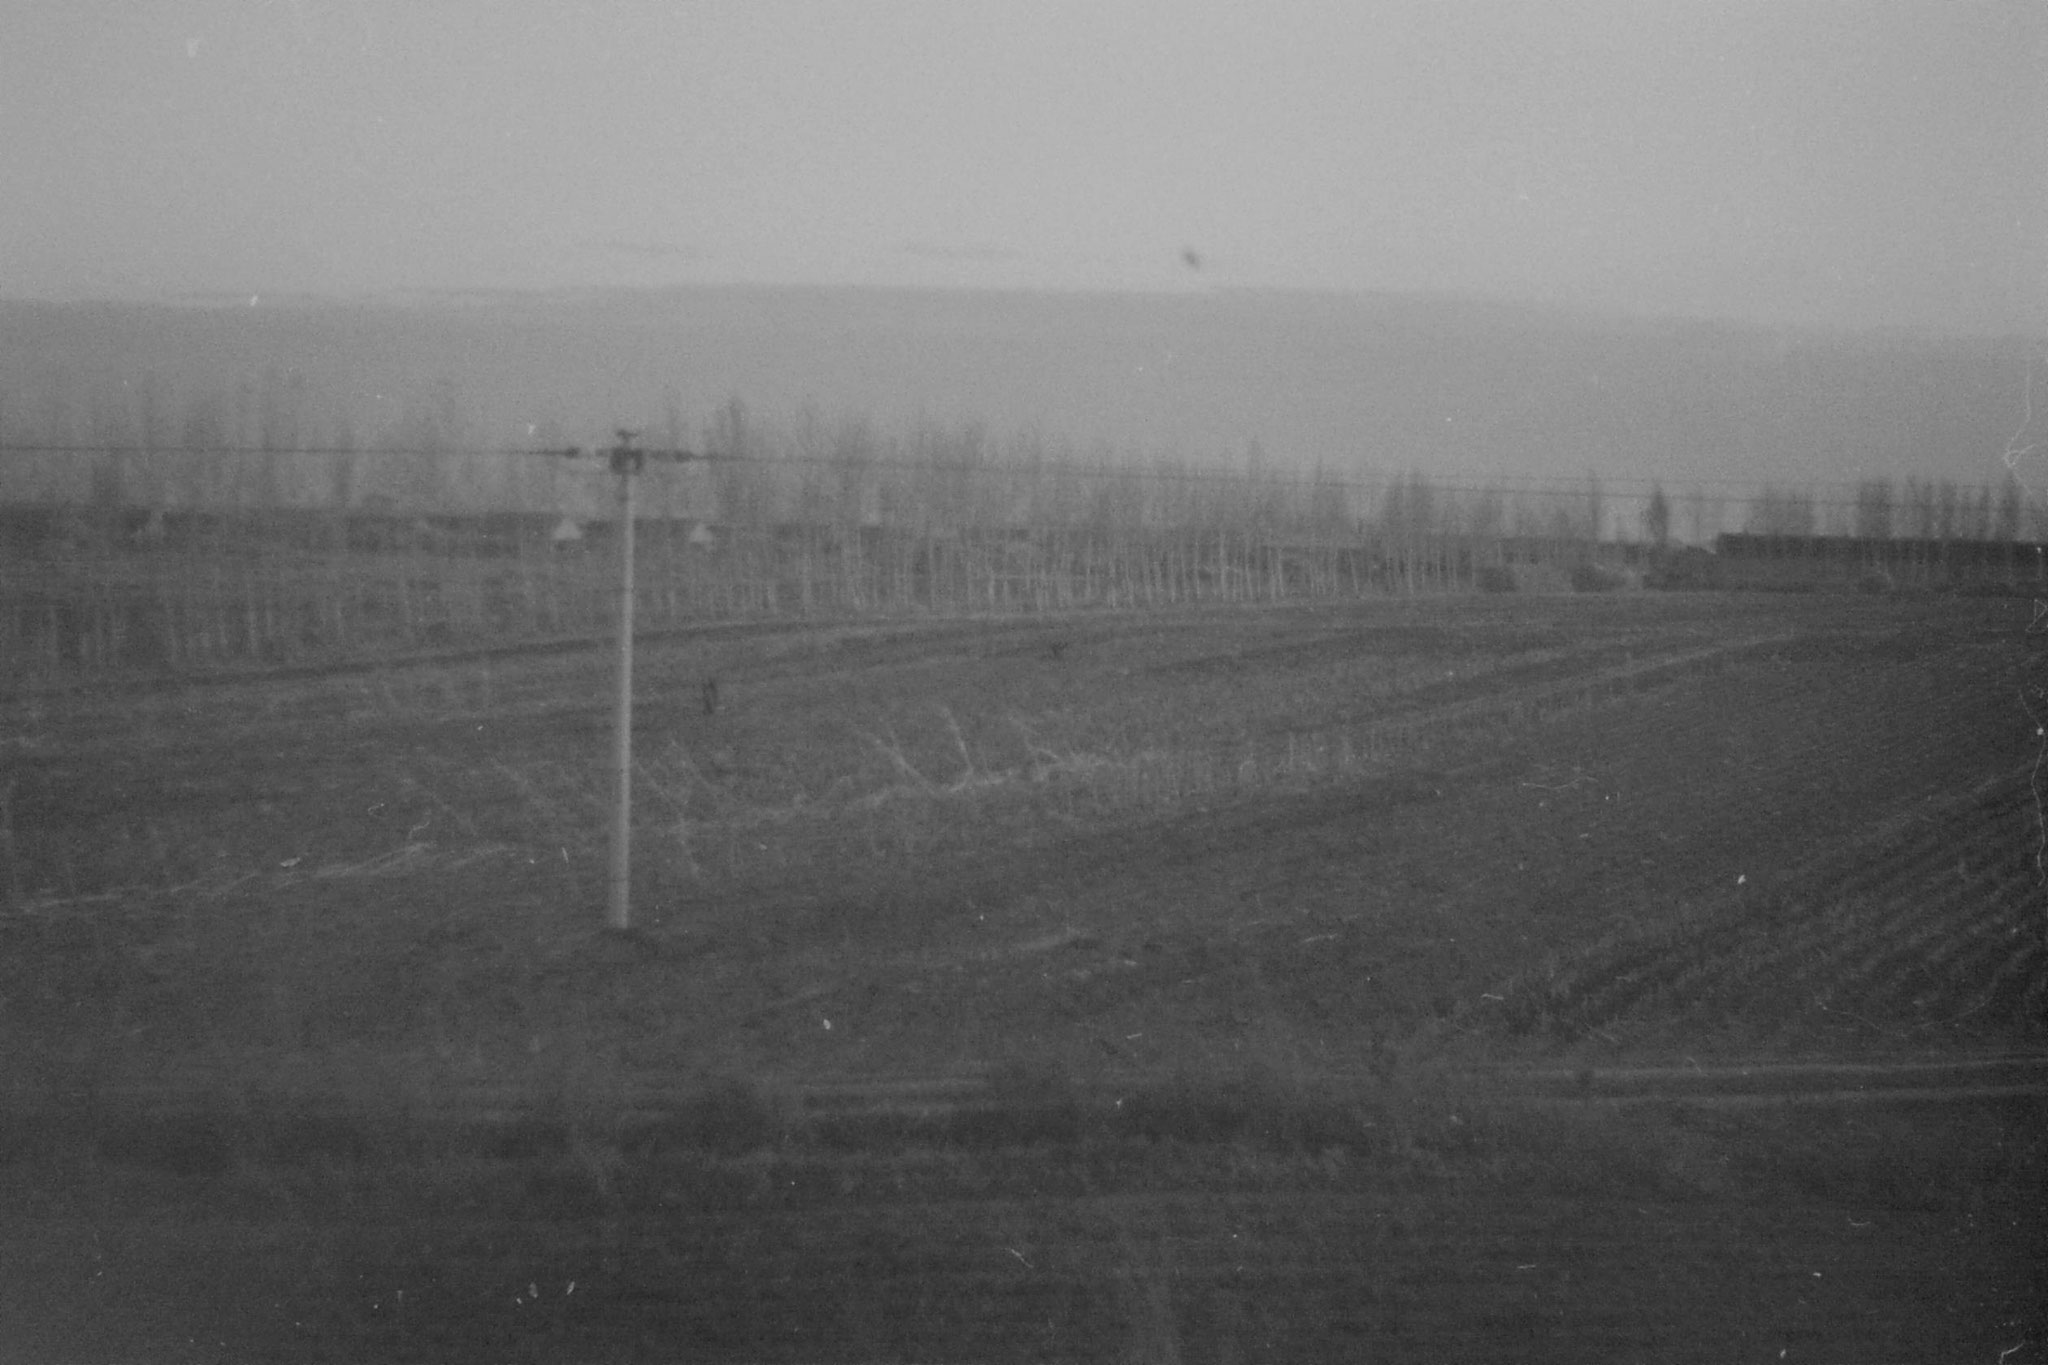 27/10/1988: 25: fields after Harbin